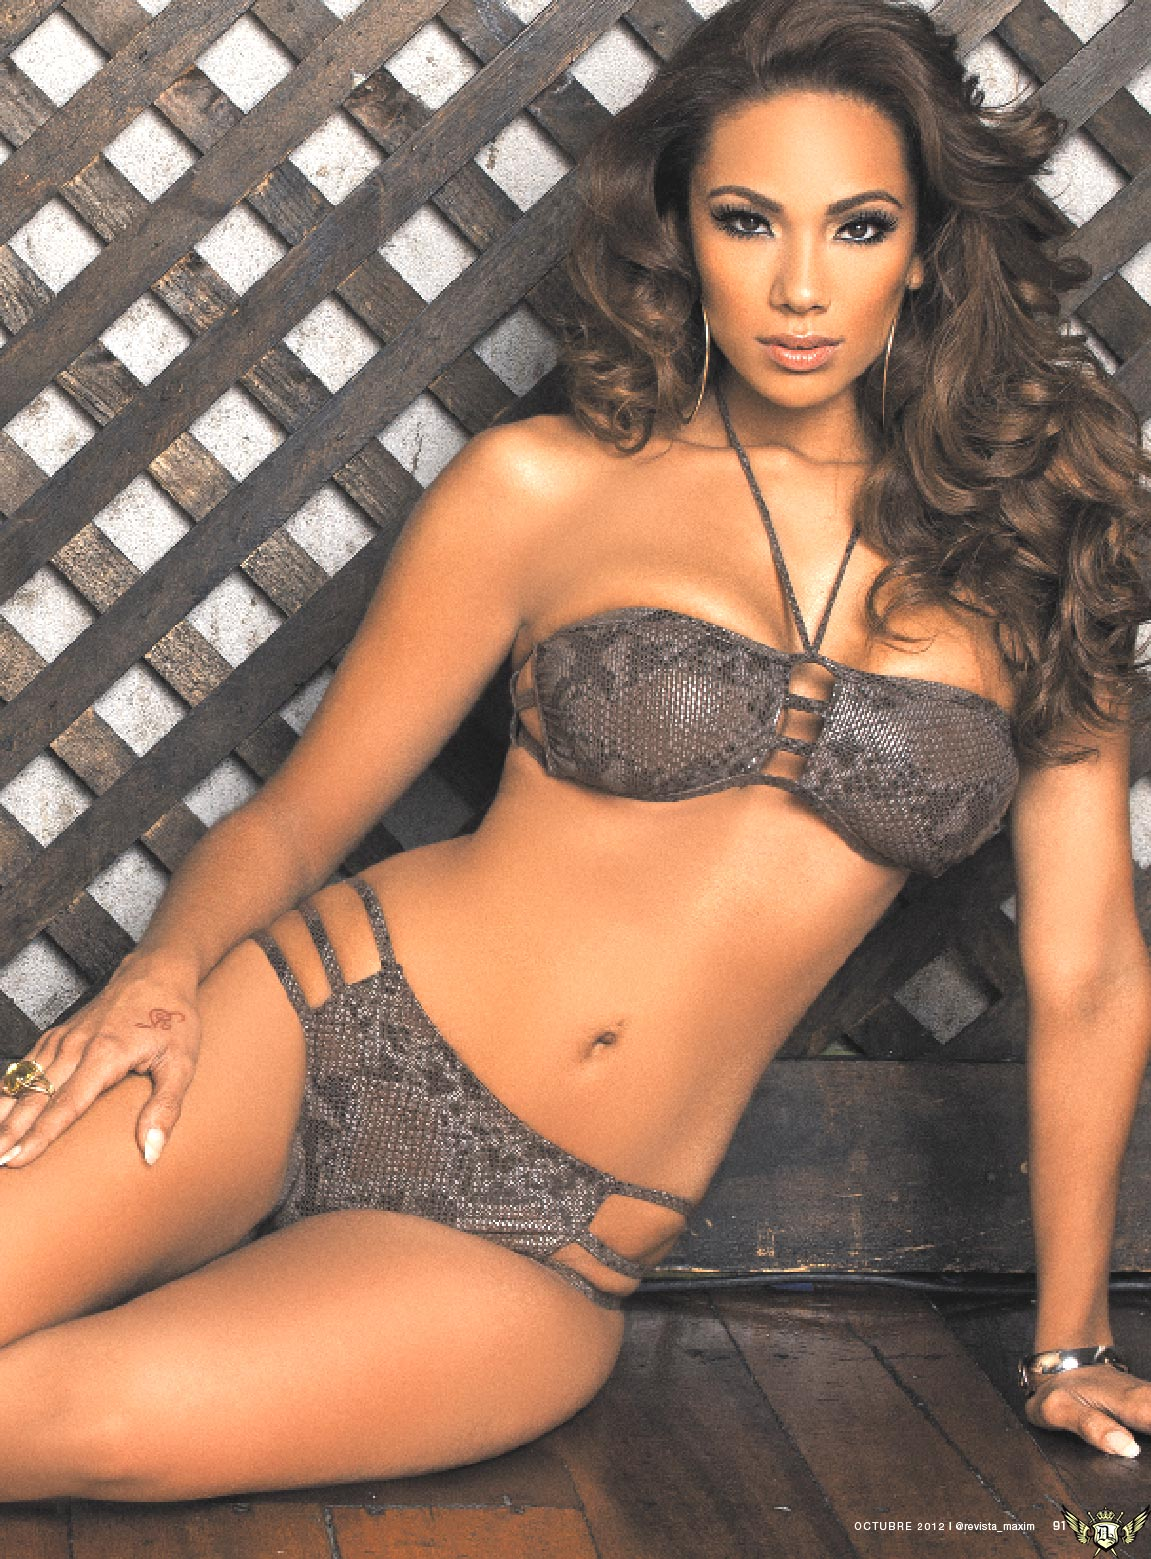 Ass Erica Mena naked (78 foto and video), Topless, Paparazzi, Selfie, lingerie 2017